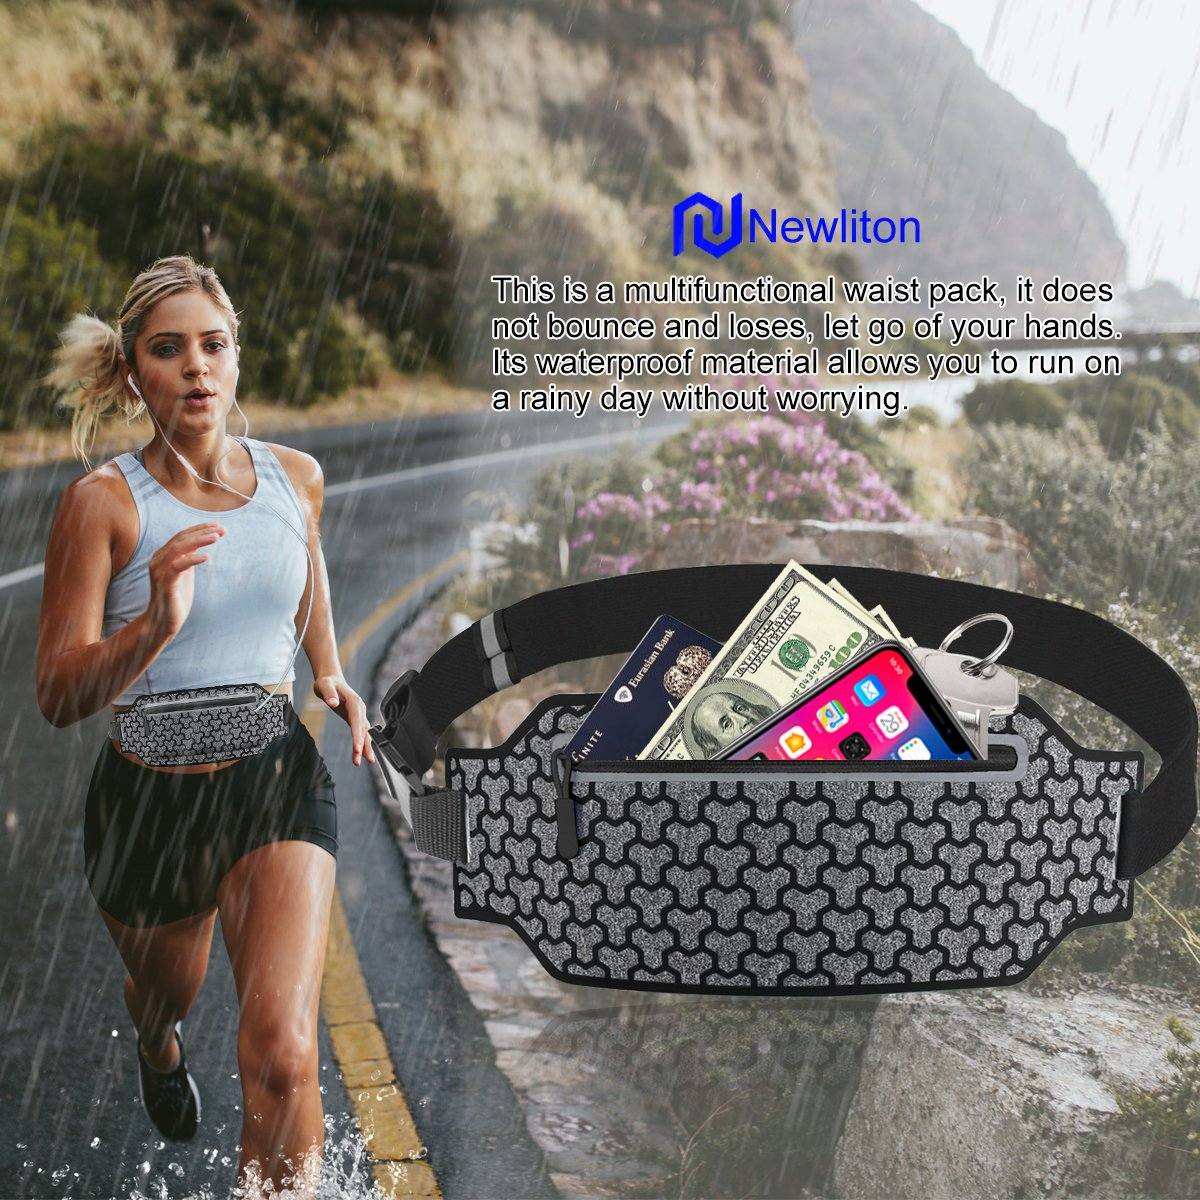 Newliton Running Belt Clip for Women Men - Headphone Fanny Pack Bag Belt Holder for Multiple Phone Models in Outdoor Sport (Black)